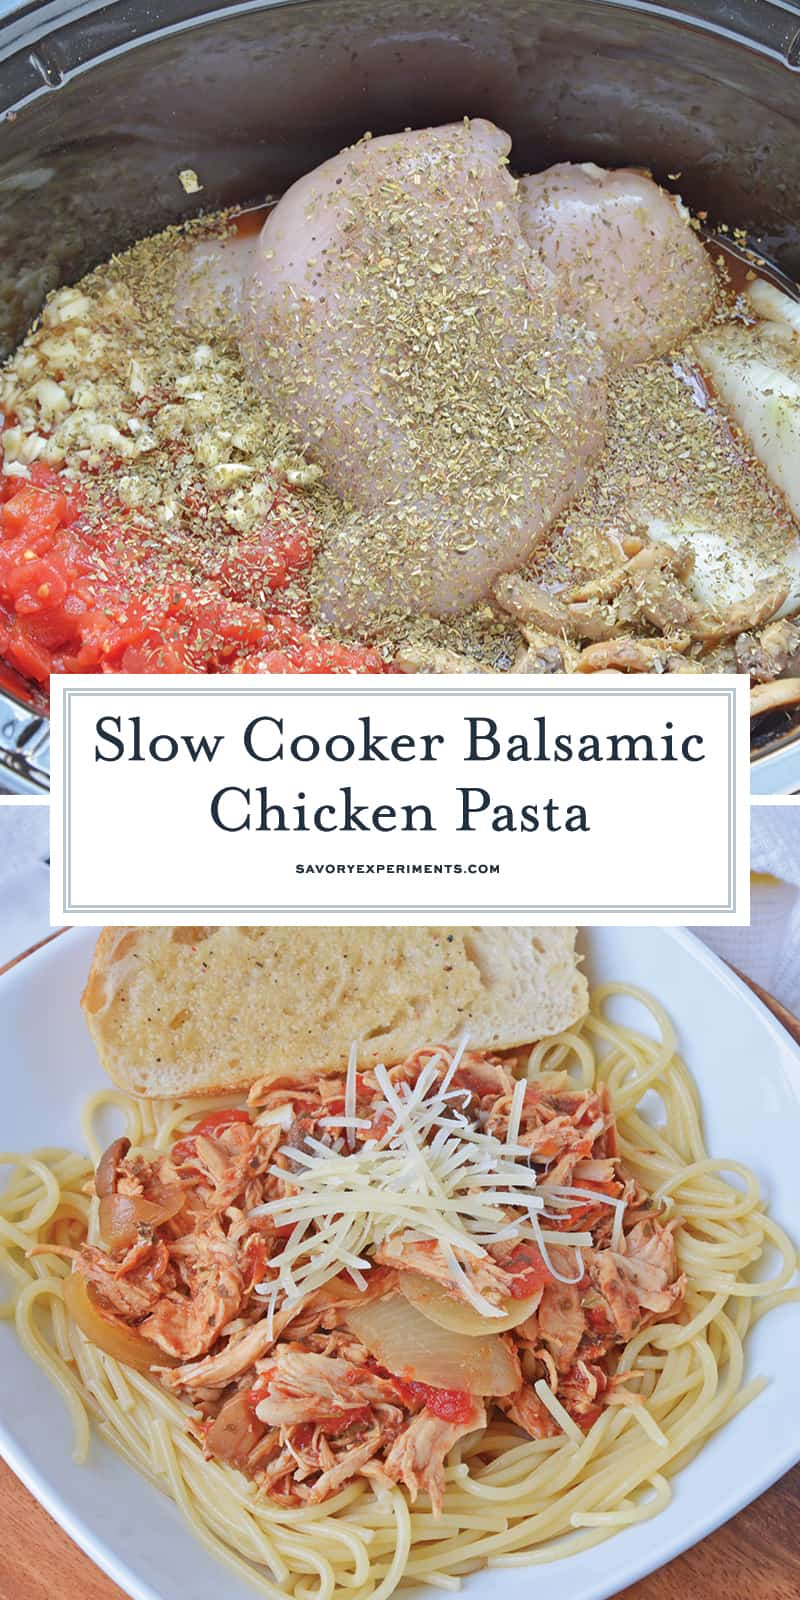 This Slow Cooker Balsamic Chicken Pasta recipe takes 10 minutes to prepare, is healthy and freezer friendly when cooked!#crockpotchickenrecipes #slowcookerbalsamicchicken www.savoryexperiments.com